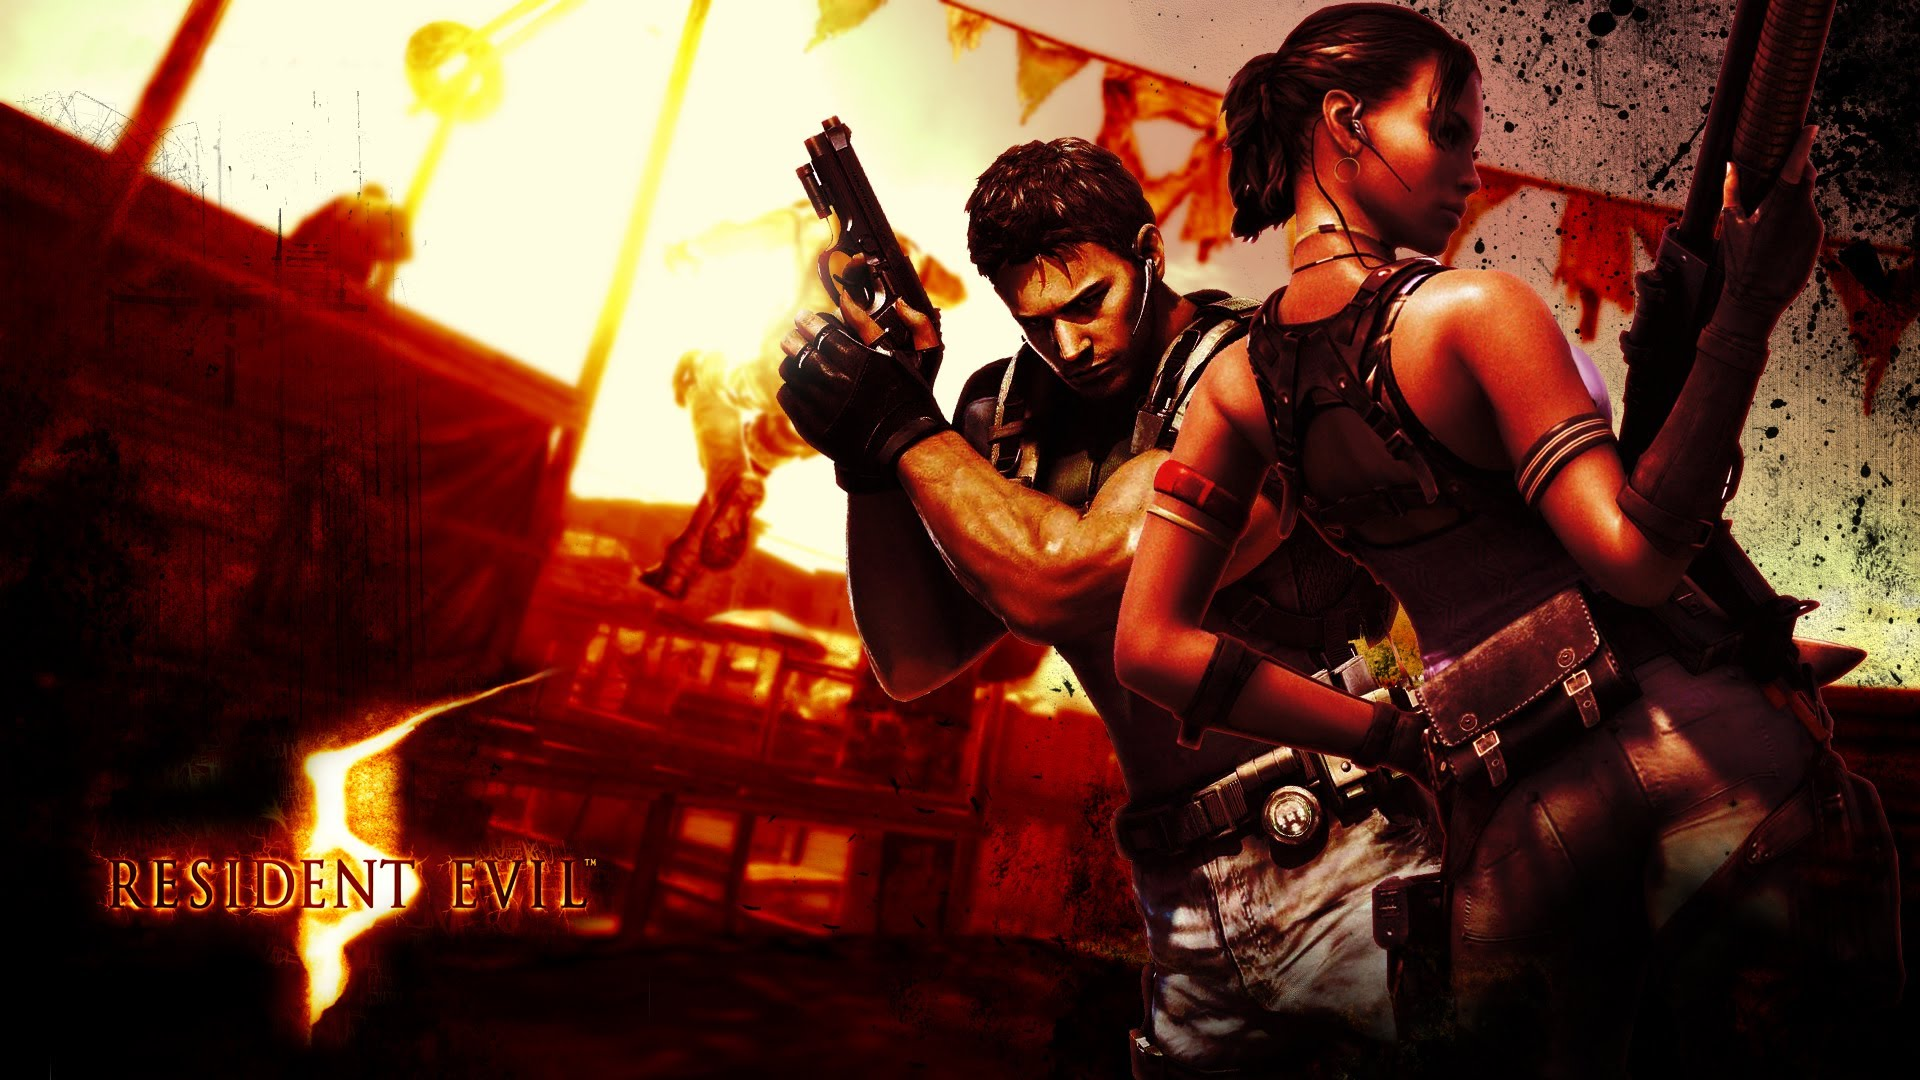 Play Capcom S Survival Horror Hit Resident Evil 5 Now On Shield Android Tv Articles Pocket Gamer